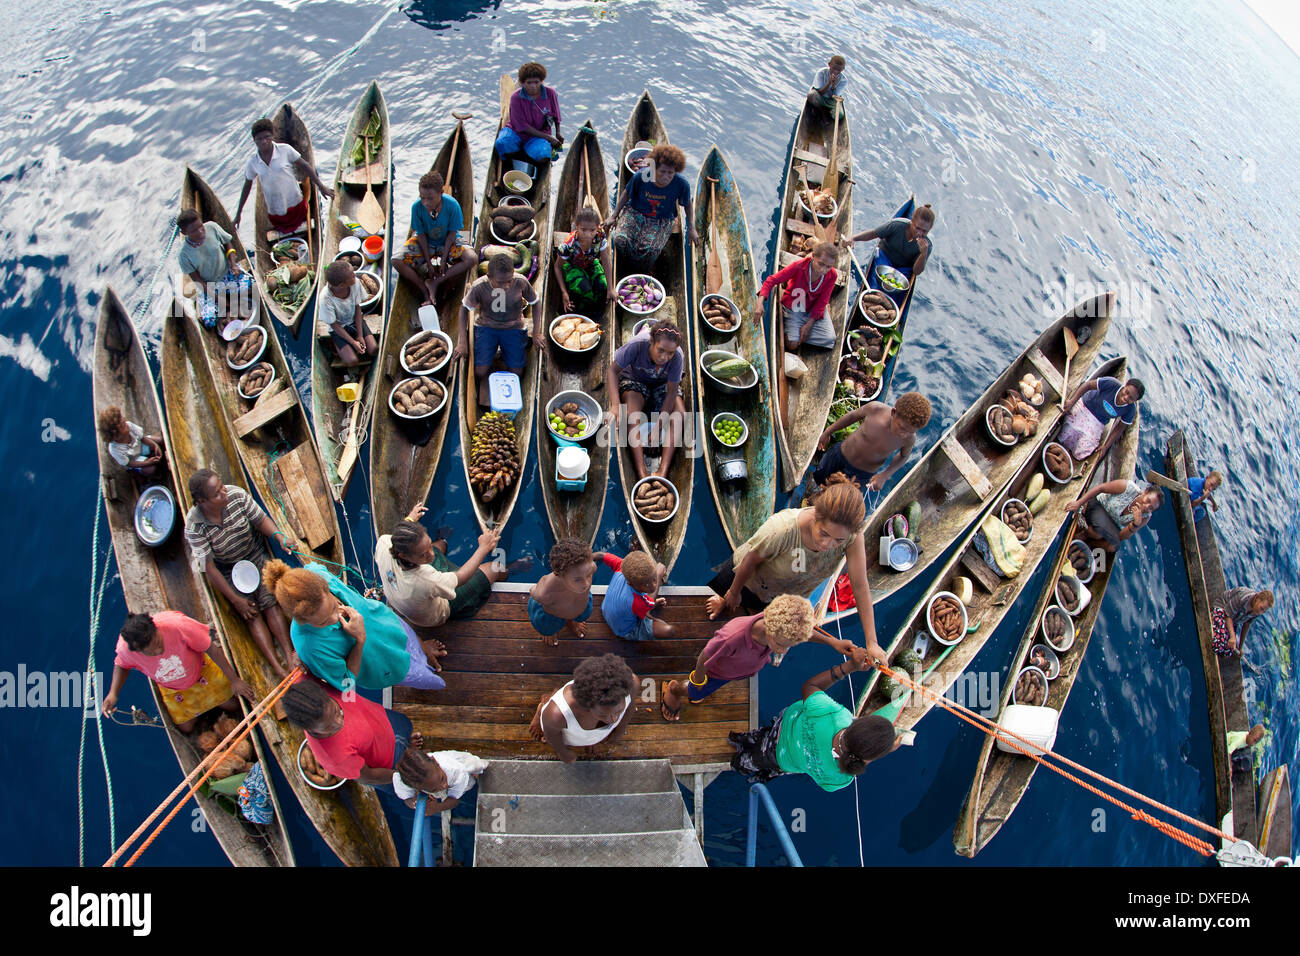 Natives selliing products to a Liveaboard, Melanesia, Pacific Ocean, Solomon Islands - Stock Image